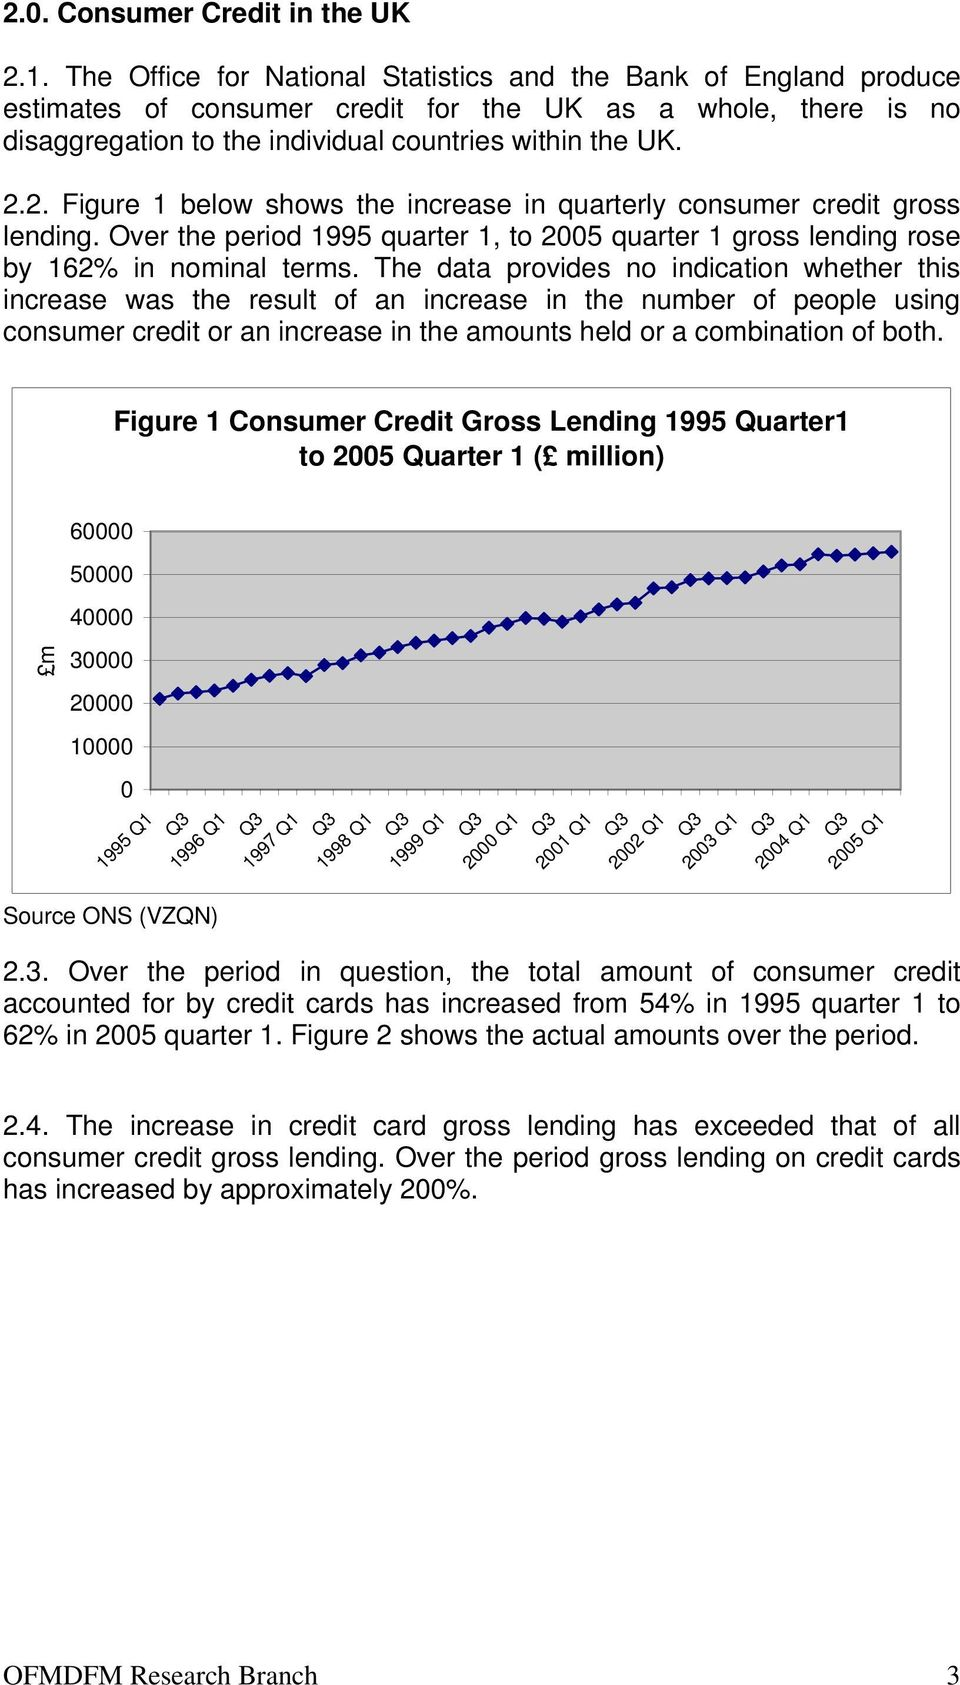 2. Figure 1 below shows the increase in quarterly consumer credit gross lending. Over the period 1995 quarter 1, to 2005 quarter 1 gross lending rose by 162% in nominal terms.